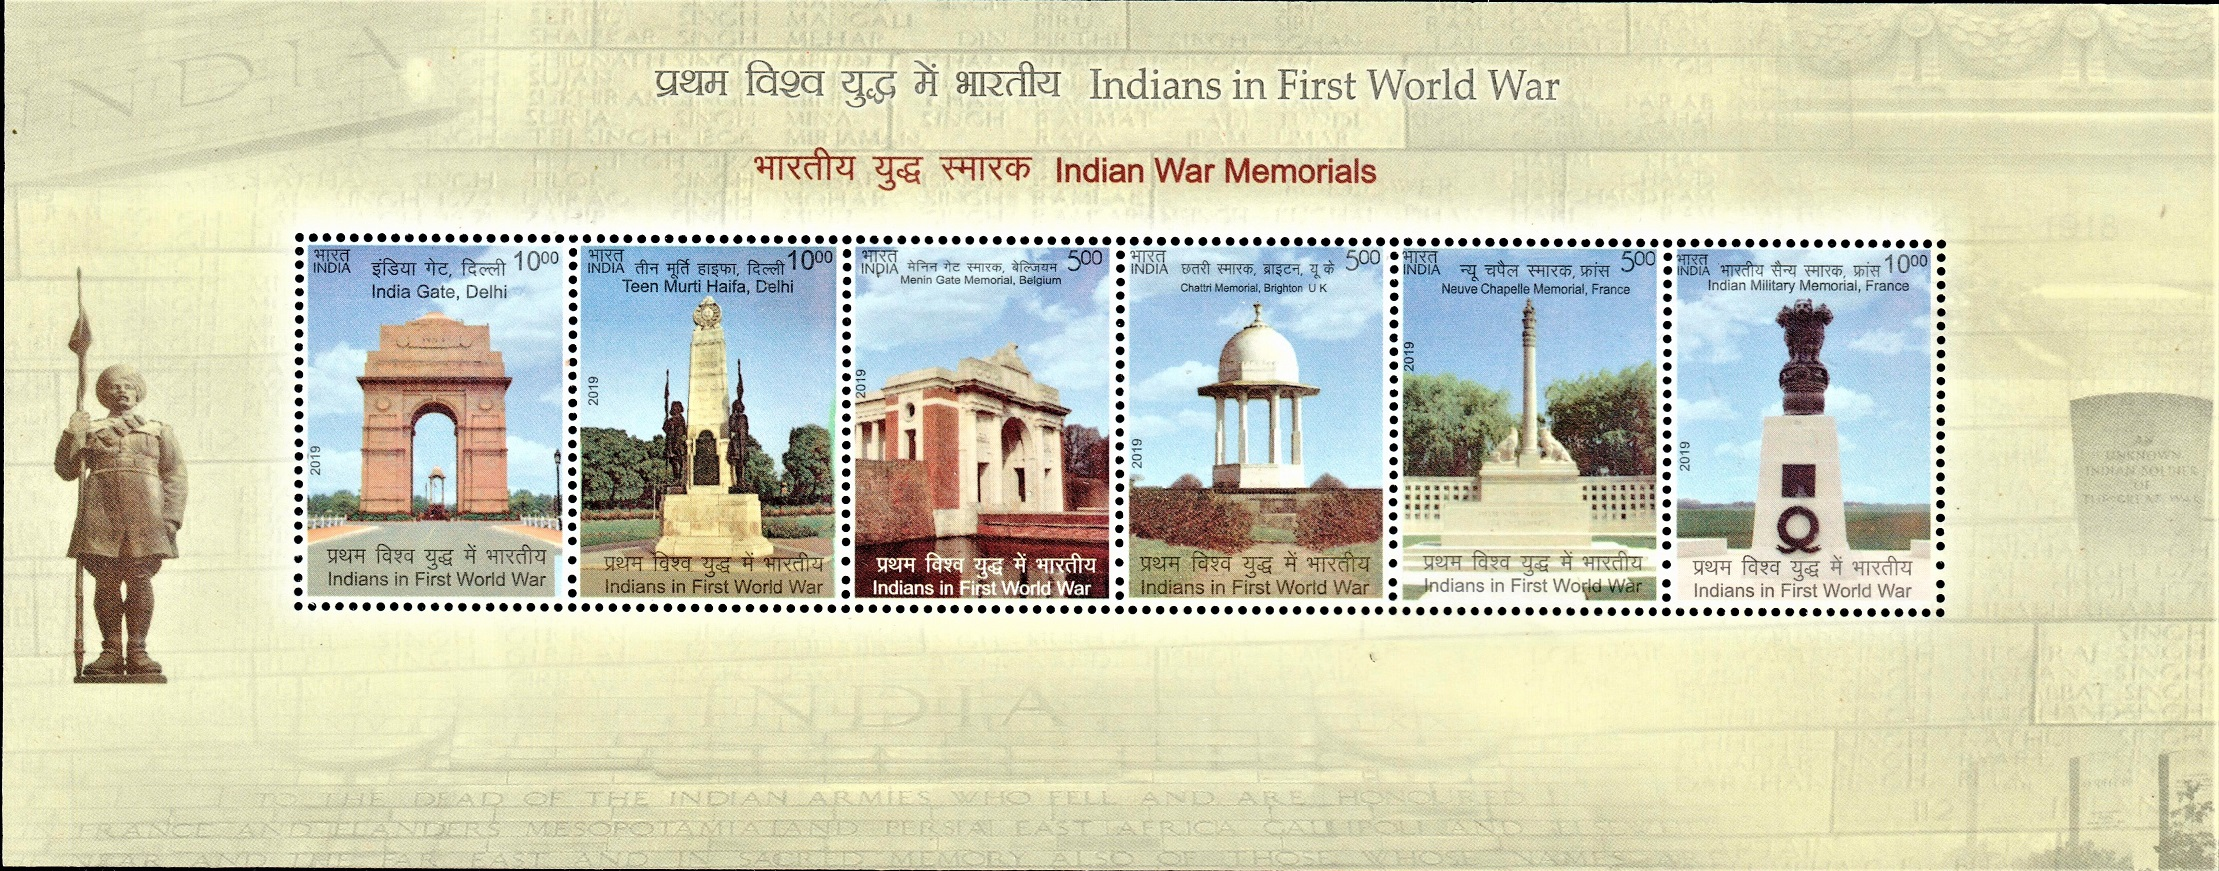 India Gate, Teen Murti Bhavan, Neuve-Chapelle Indian Memorial, Chattri, Menin Gate & Villers-Guislain Memorial